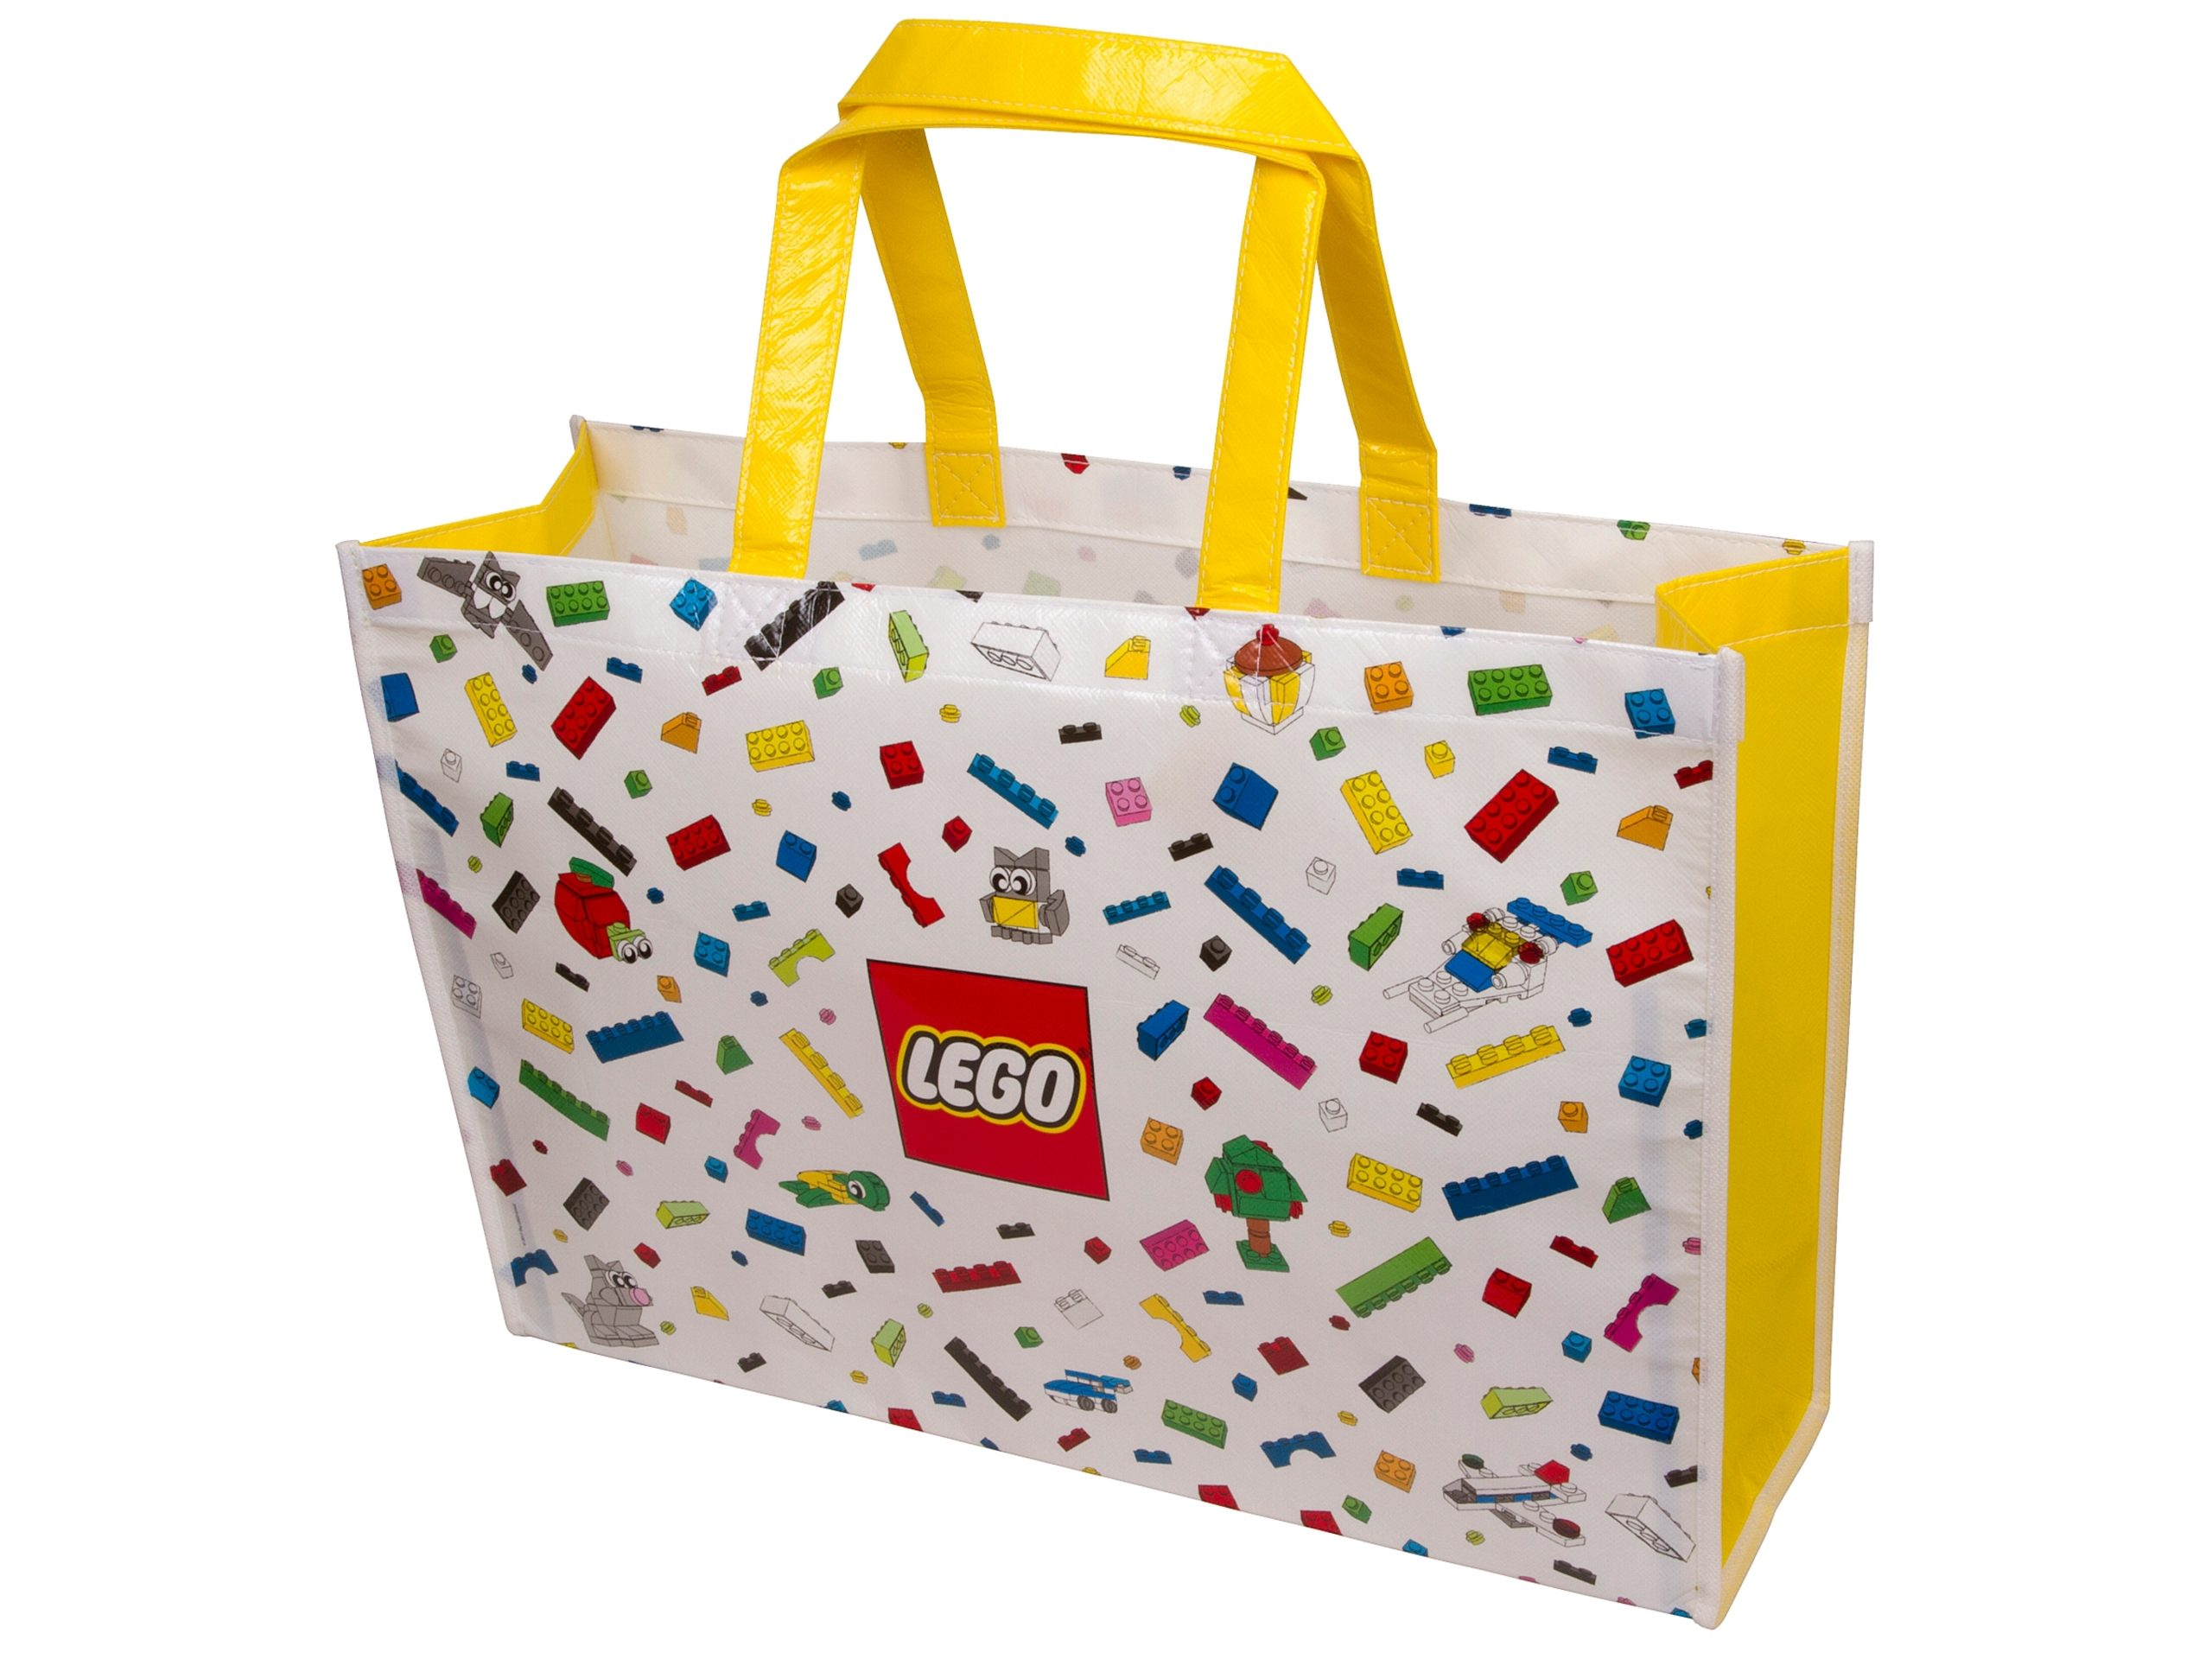 lego 853669 shopper bag scaled